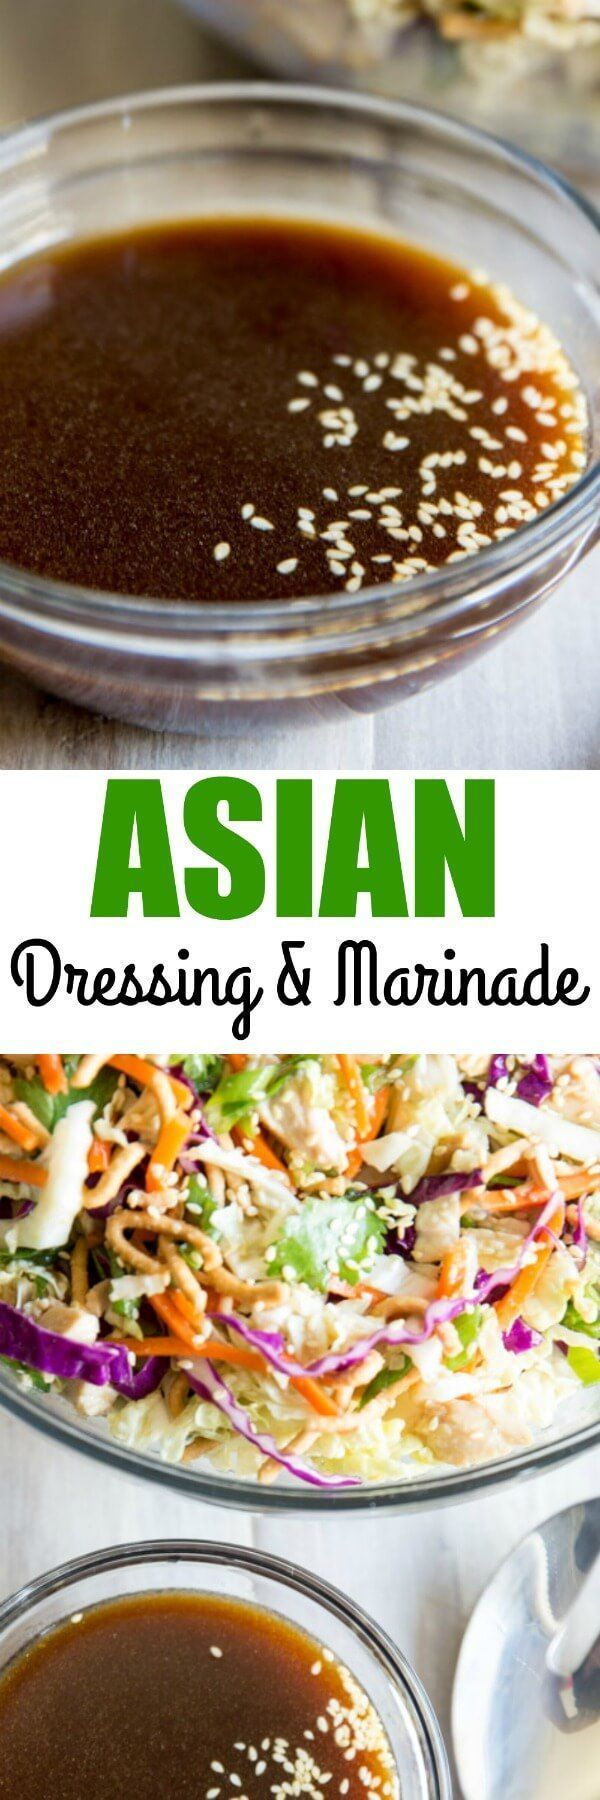 Asian style dressing for vegetables